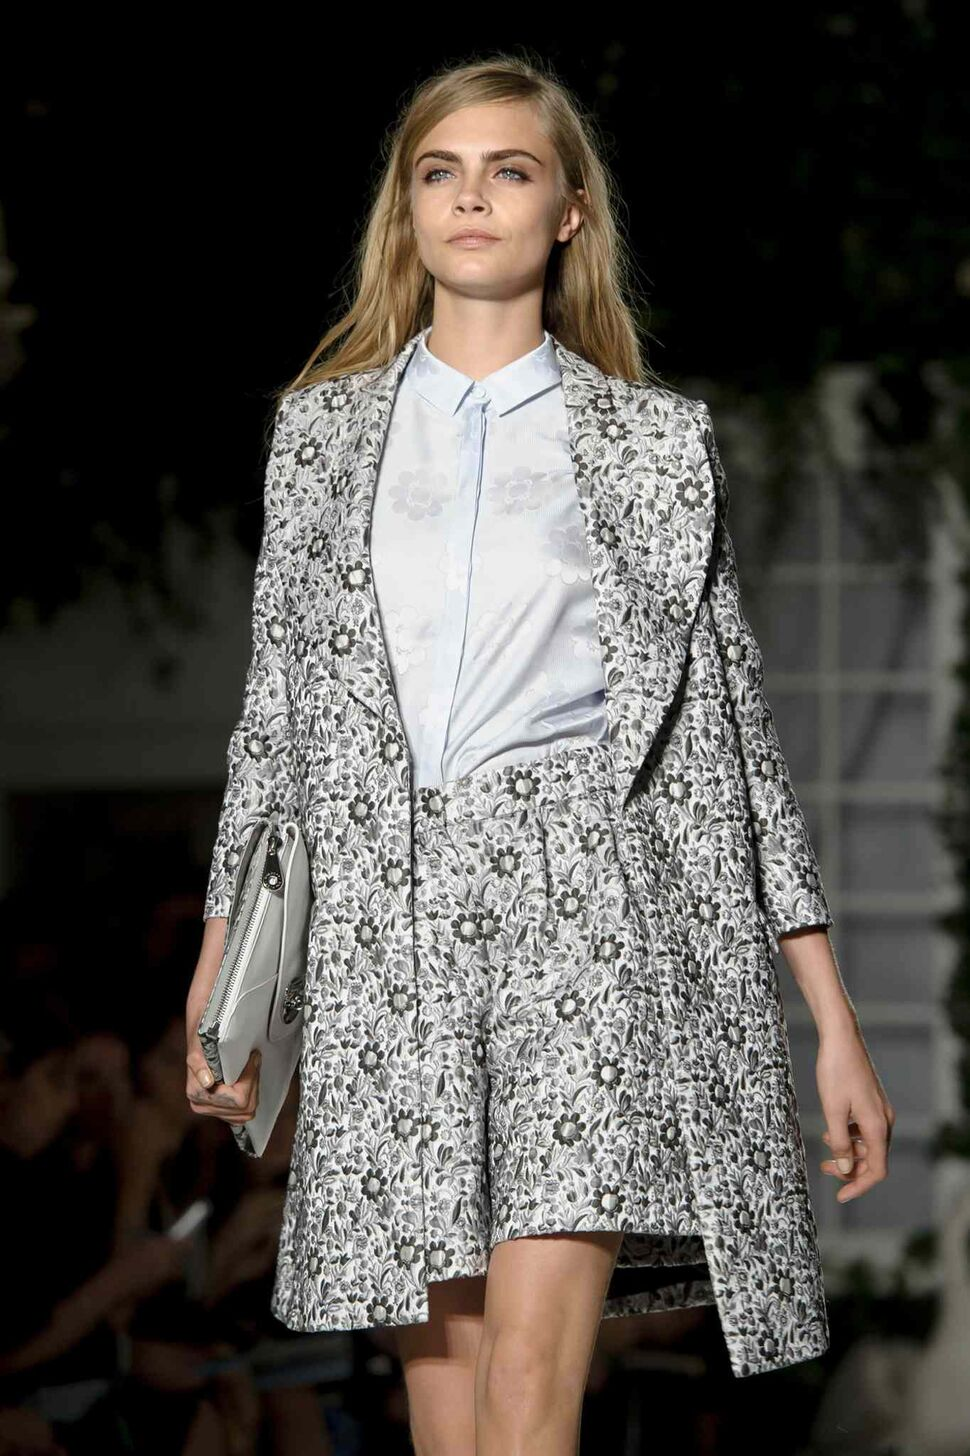 British model Cara Delevingne wears a design created by Mulberry during London Fashion Week Spring/Summer 2014, at Claridges Hotel in central London, Sunday, Sept. 15, 2013. (Jonathan Short / The Associated Press)